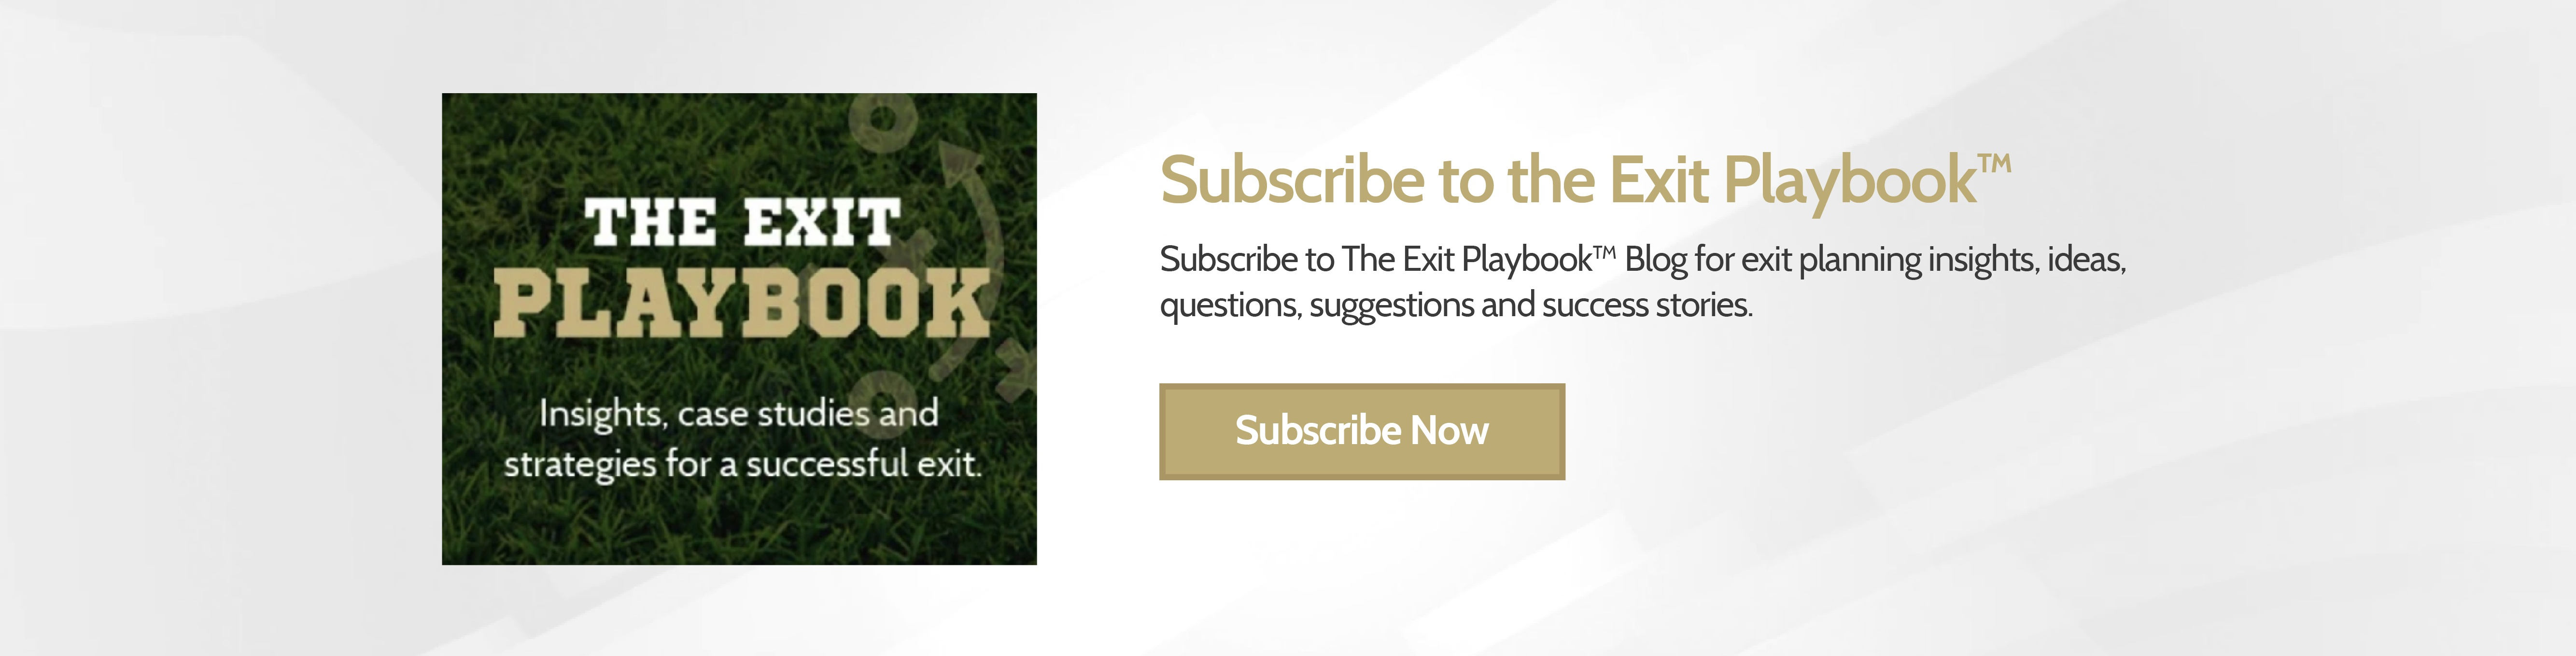 Subscribe to the Exit Playbook™